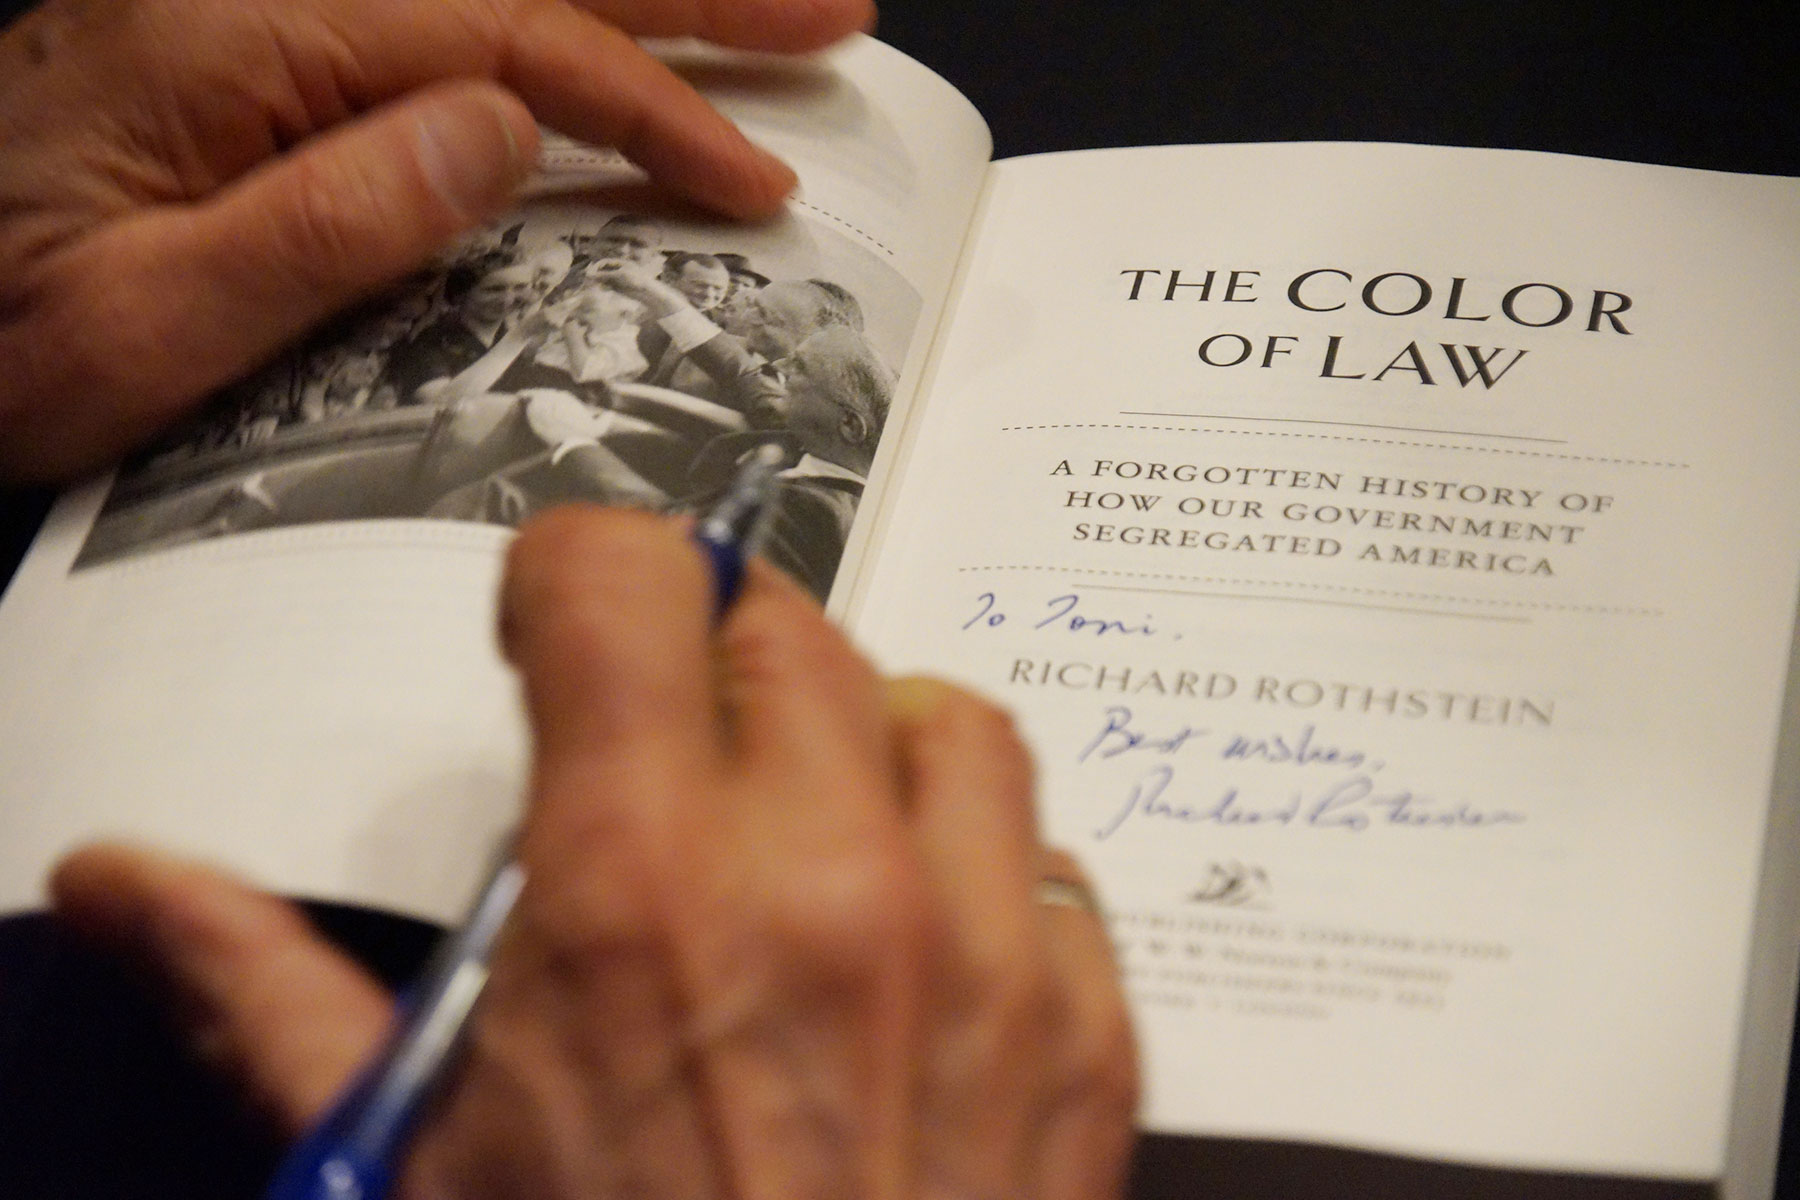 Richard Rothstein S The Color Of Law Book Among School Curriculum